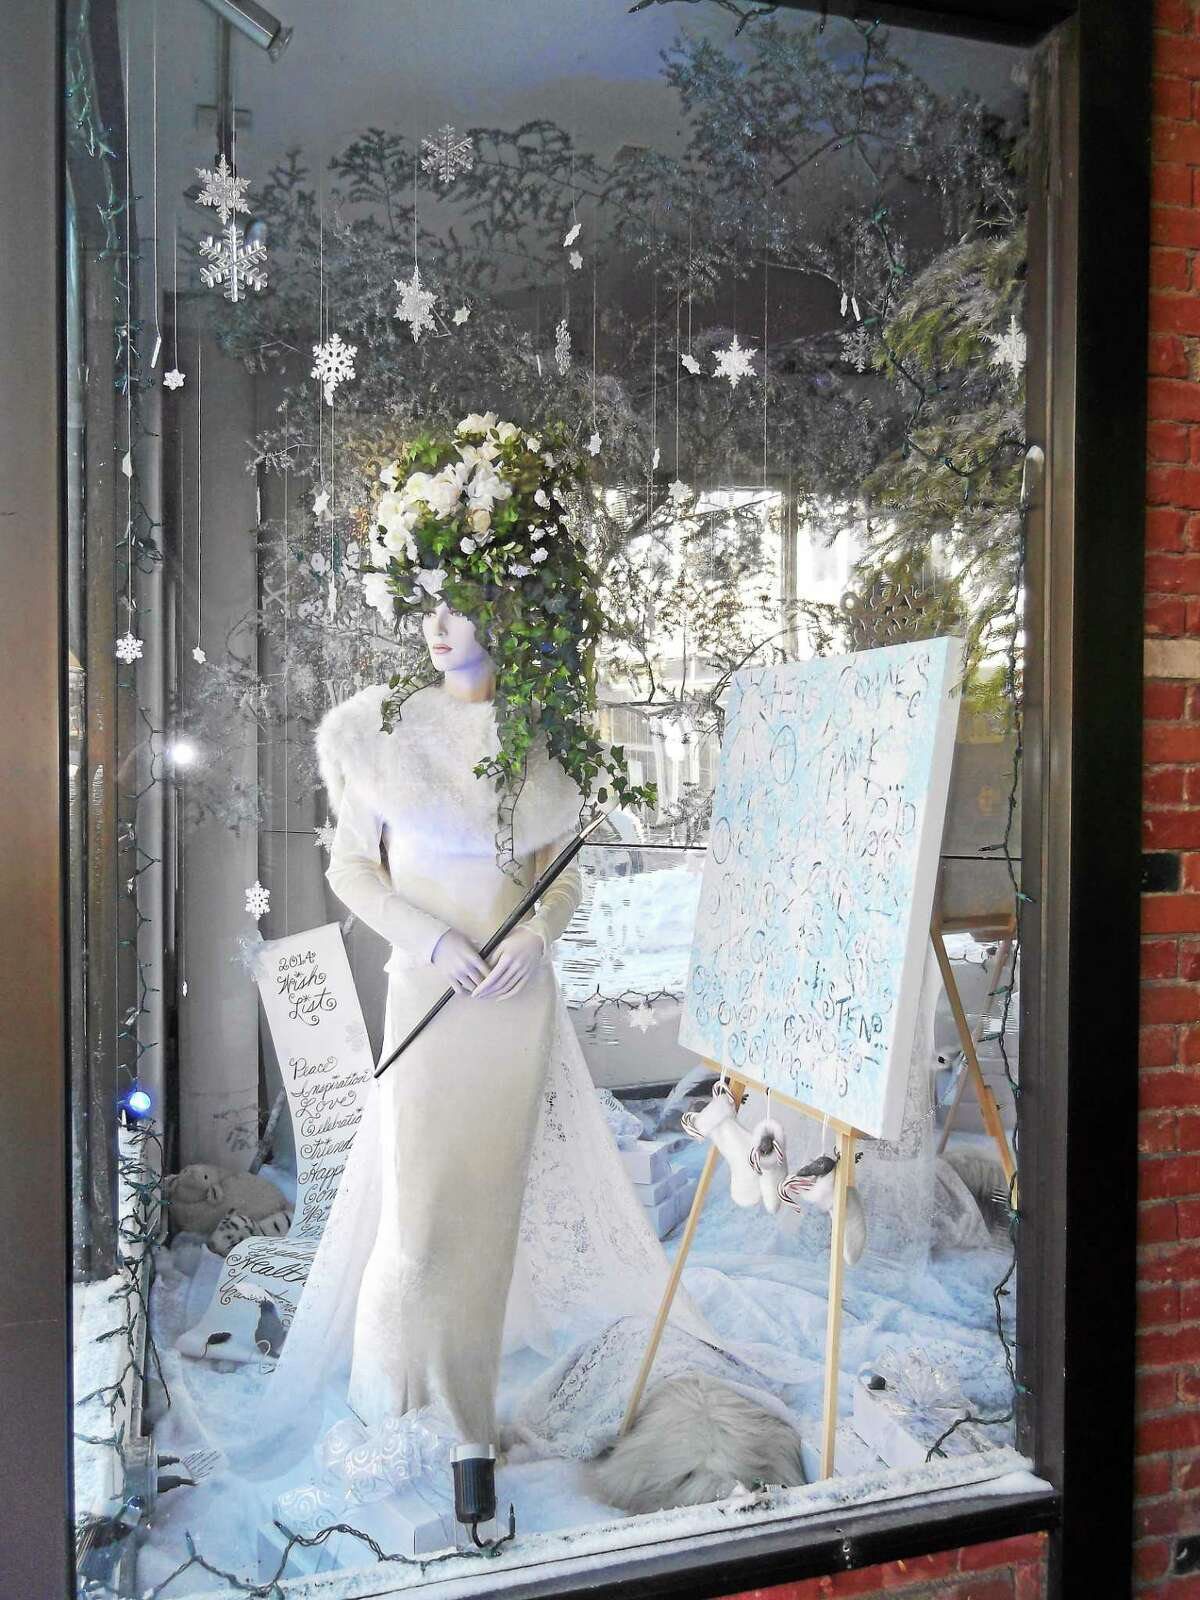 The window display created by CAFTA students Leslie Tapia Bernal, Corina Wallenta, Kate Lewton, and Tim O'Connell. In the window display there is a secret message, the first person to figure it out and submit it to CAFTA wins $50.